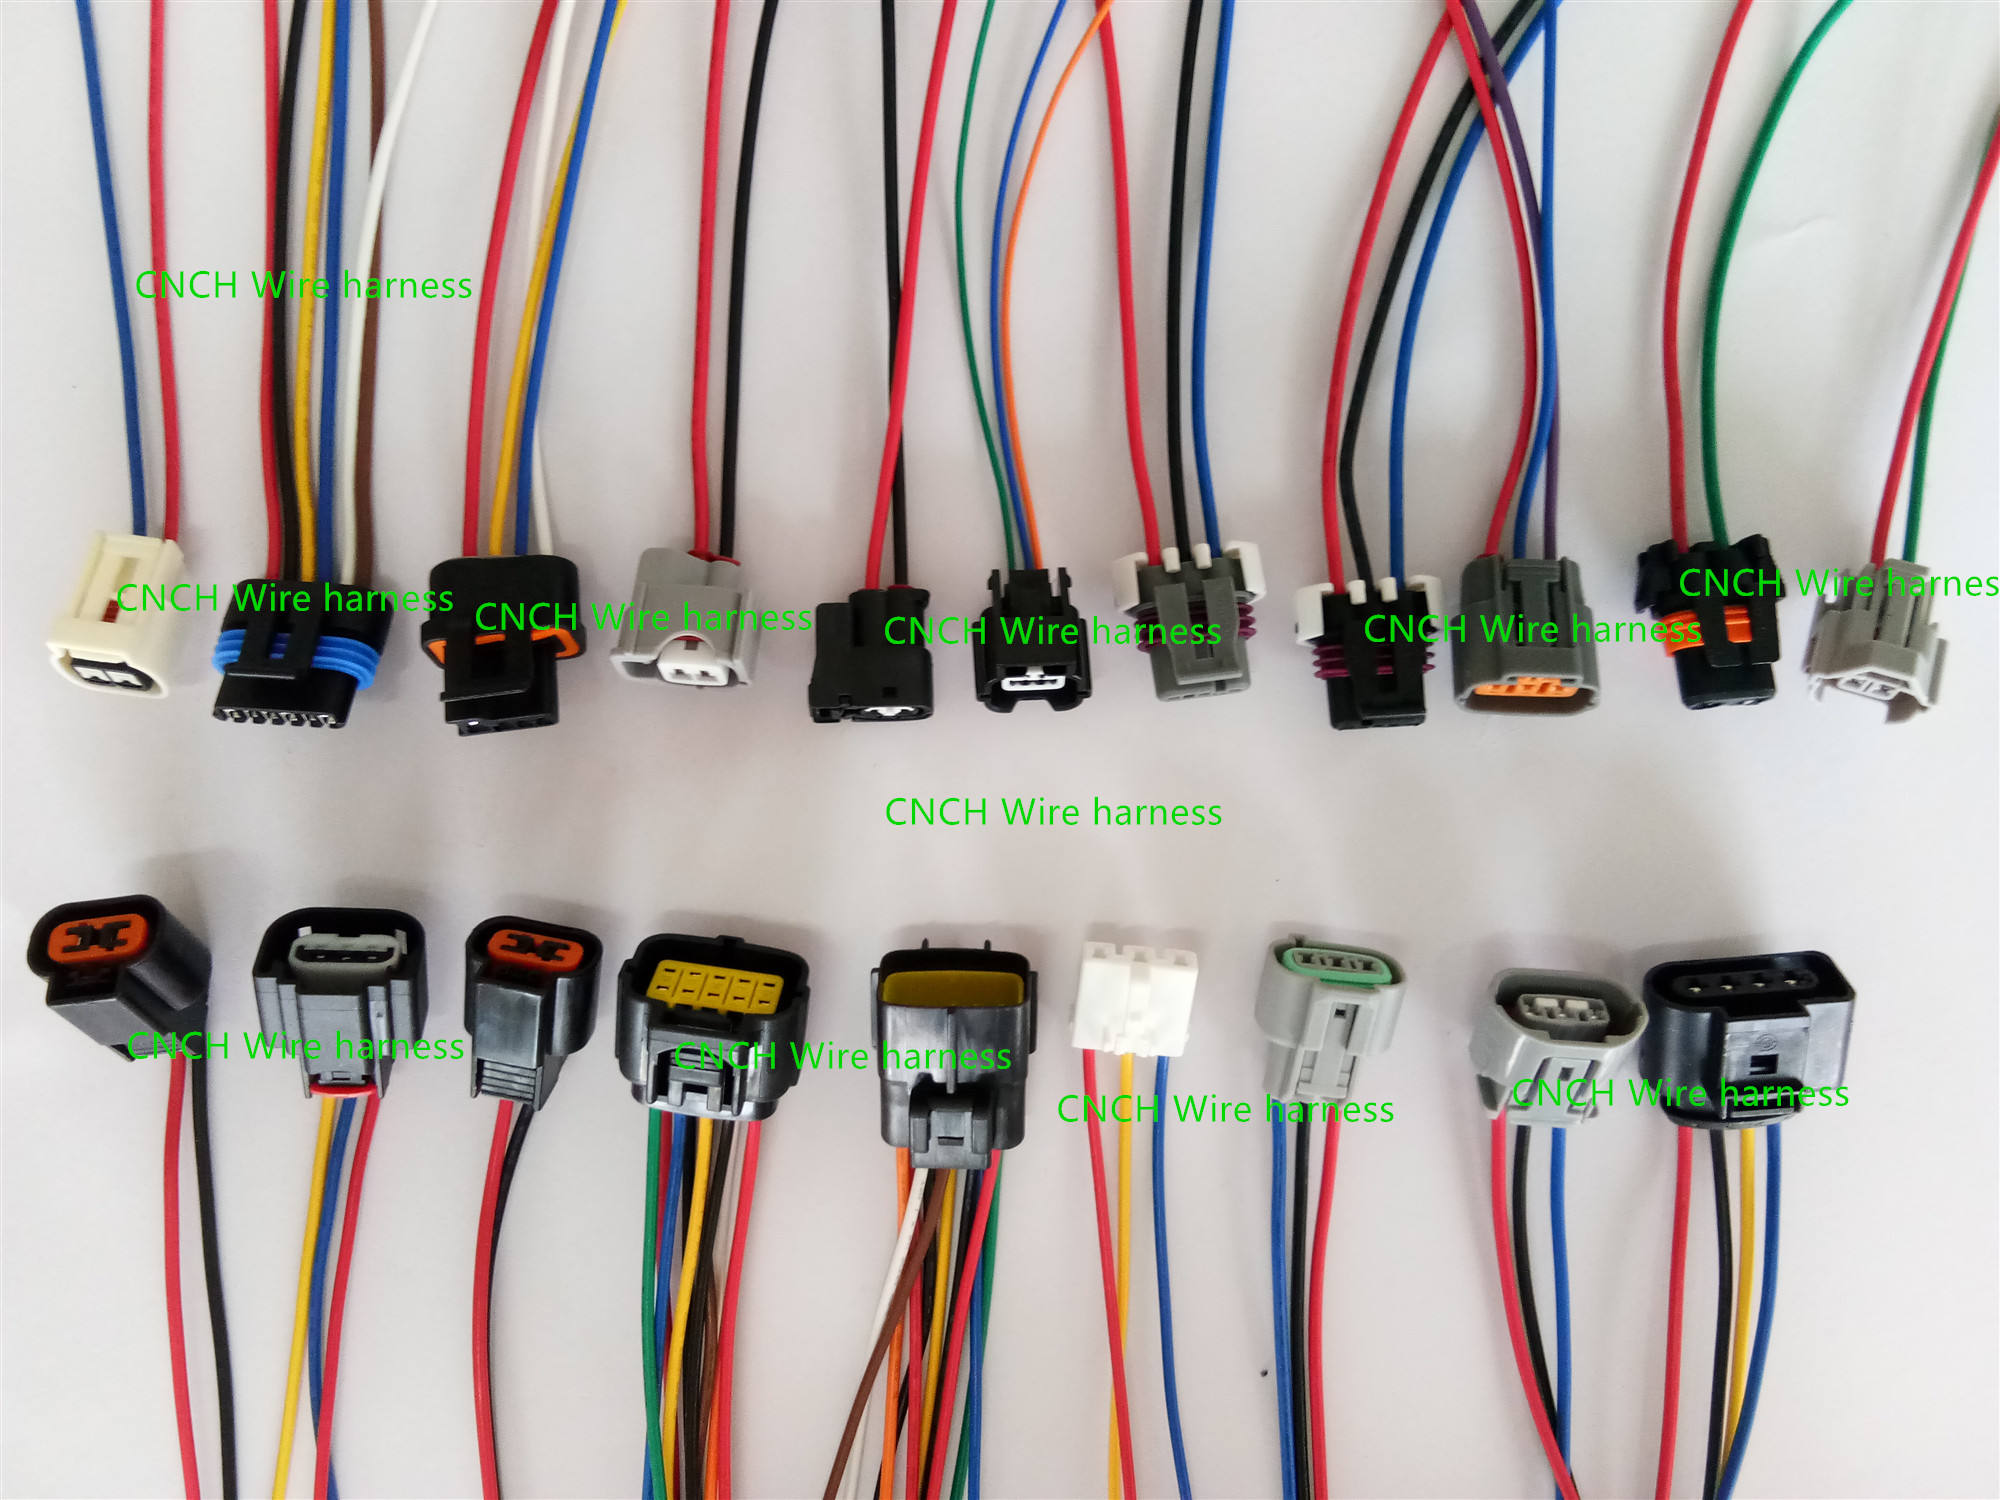 4 way wiring harness, 4 way wiring harness suppliers and ...  santuario gaia